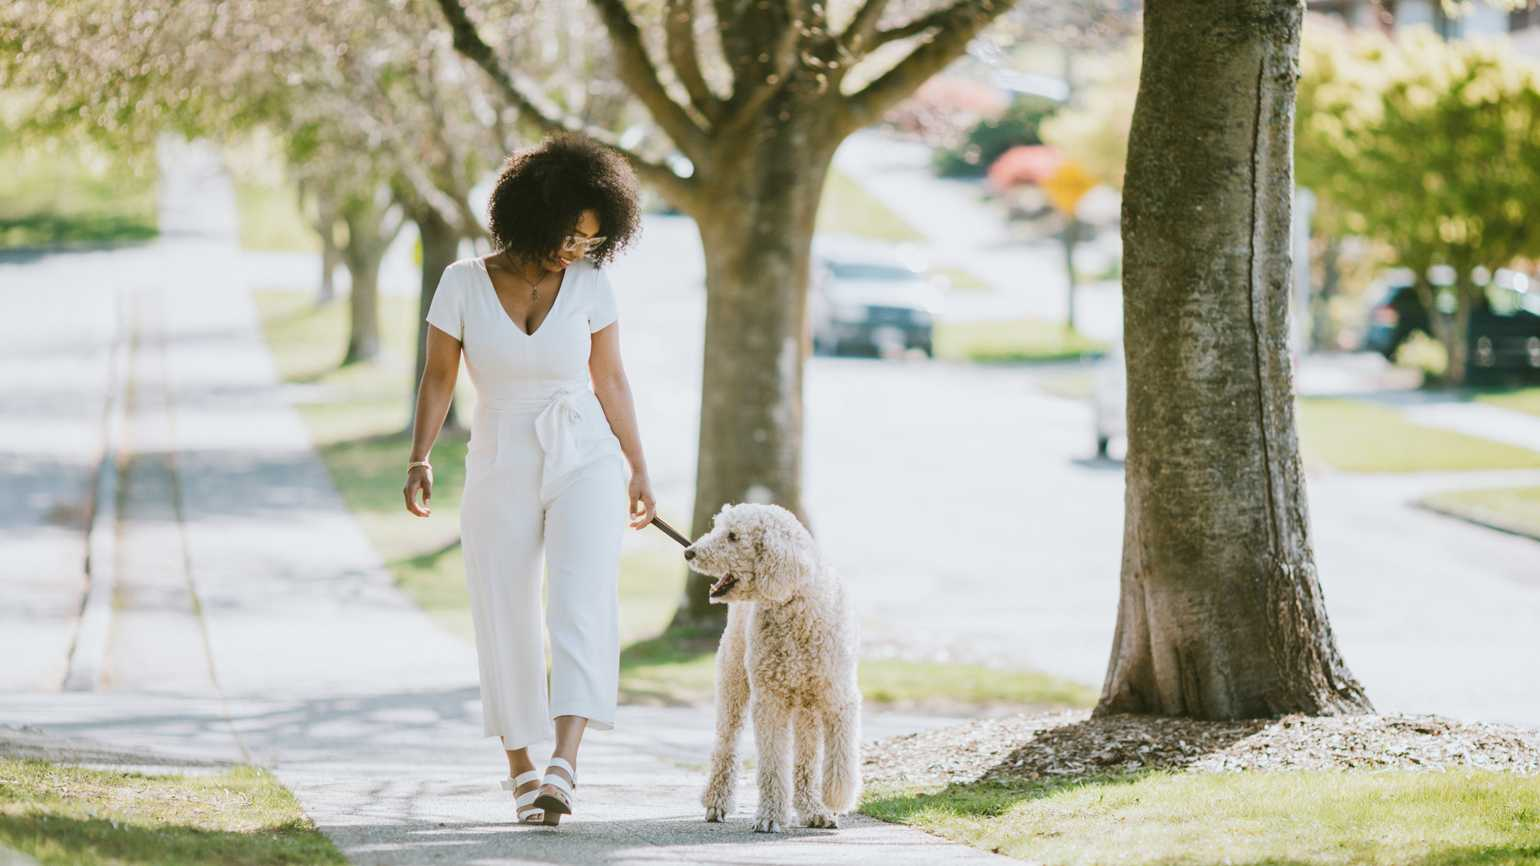 A woman enjoys time outdoors her standard poodle, taking it for a healthy walk on a sunny day.